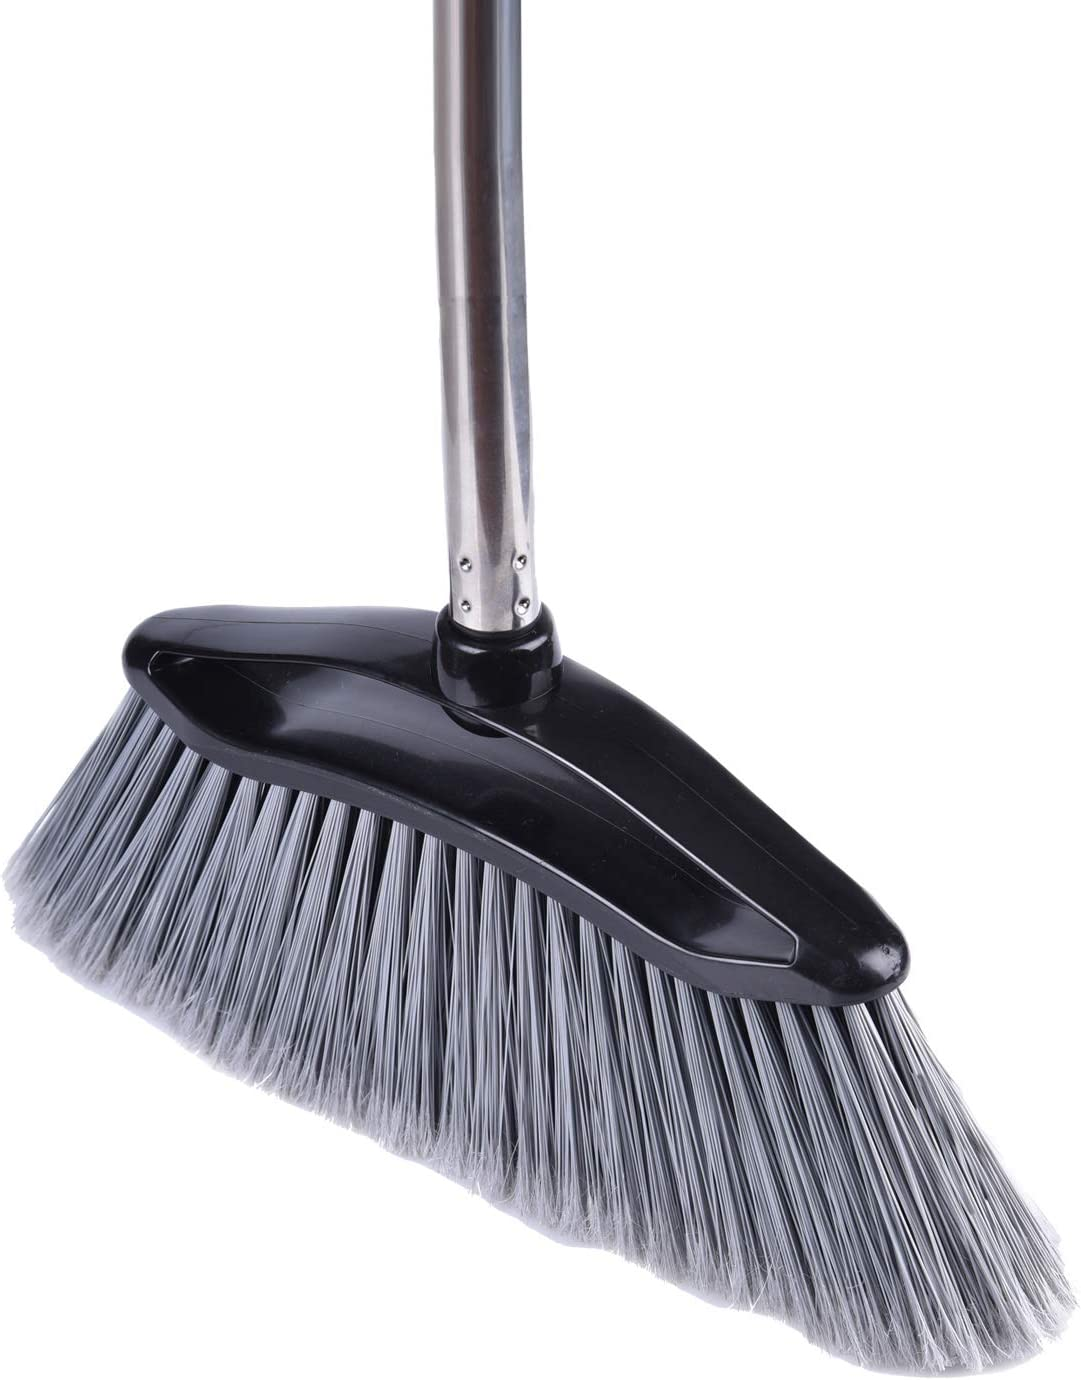 Angle Broom with Adjustable Stainless Steel Handle, PET Fine Long Broom Bristles, Heavy Duty Floor Sweeper, Great Use for Home Kitchen Room Office, 1 Pack